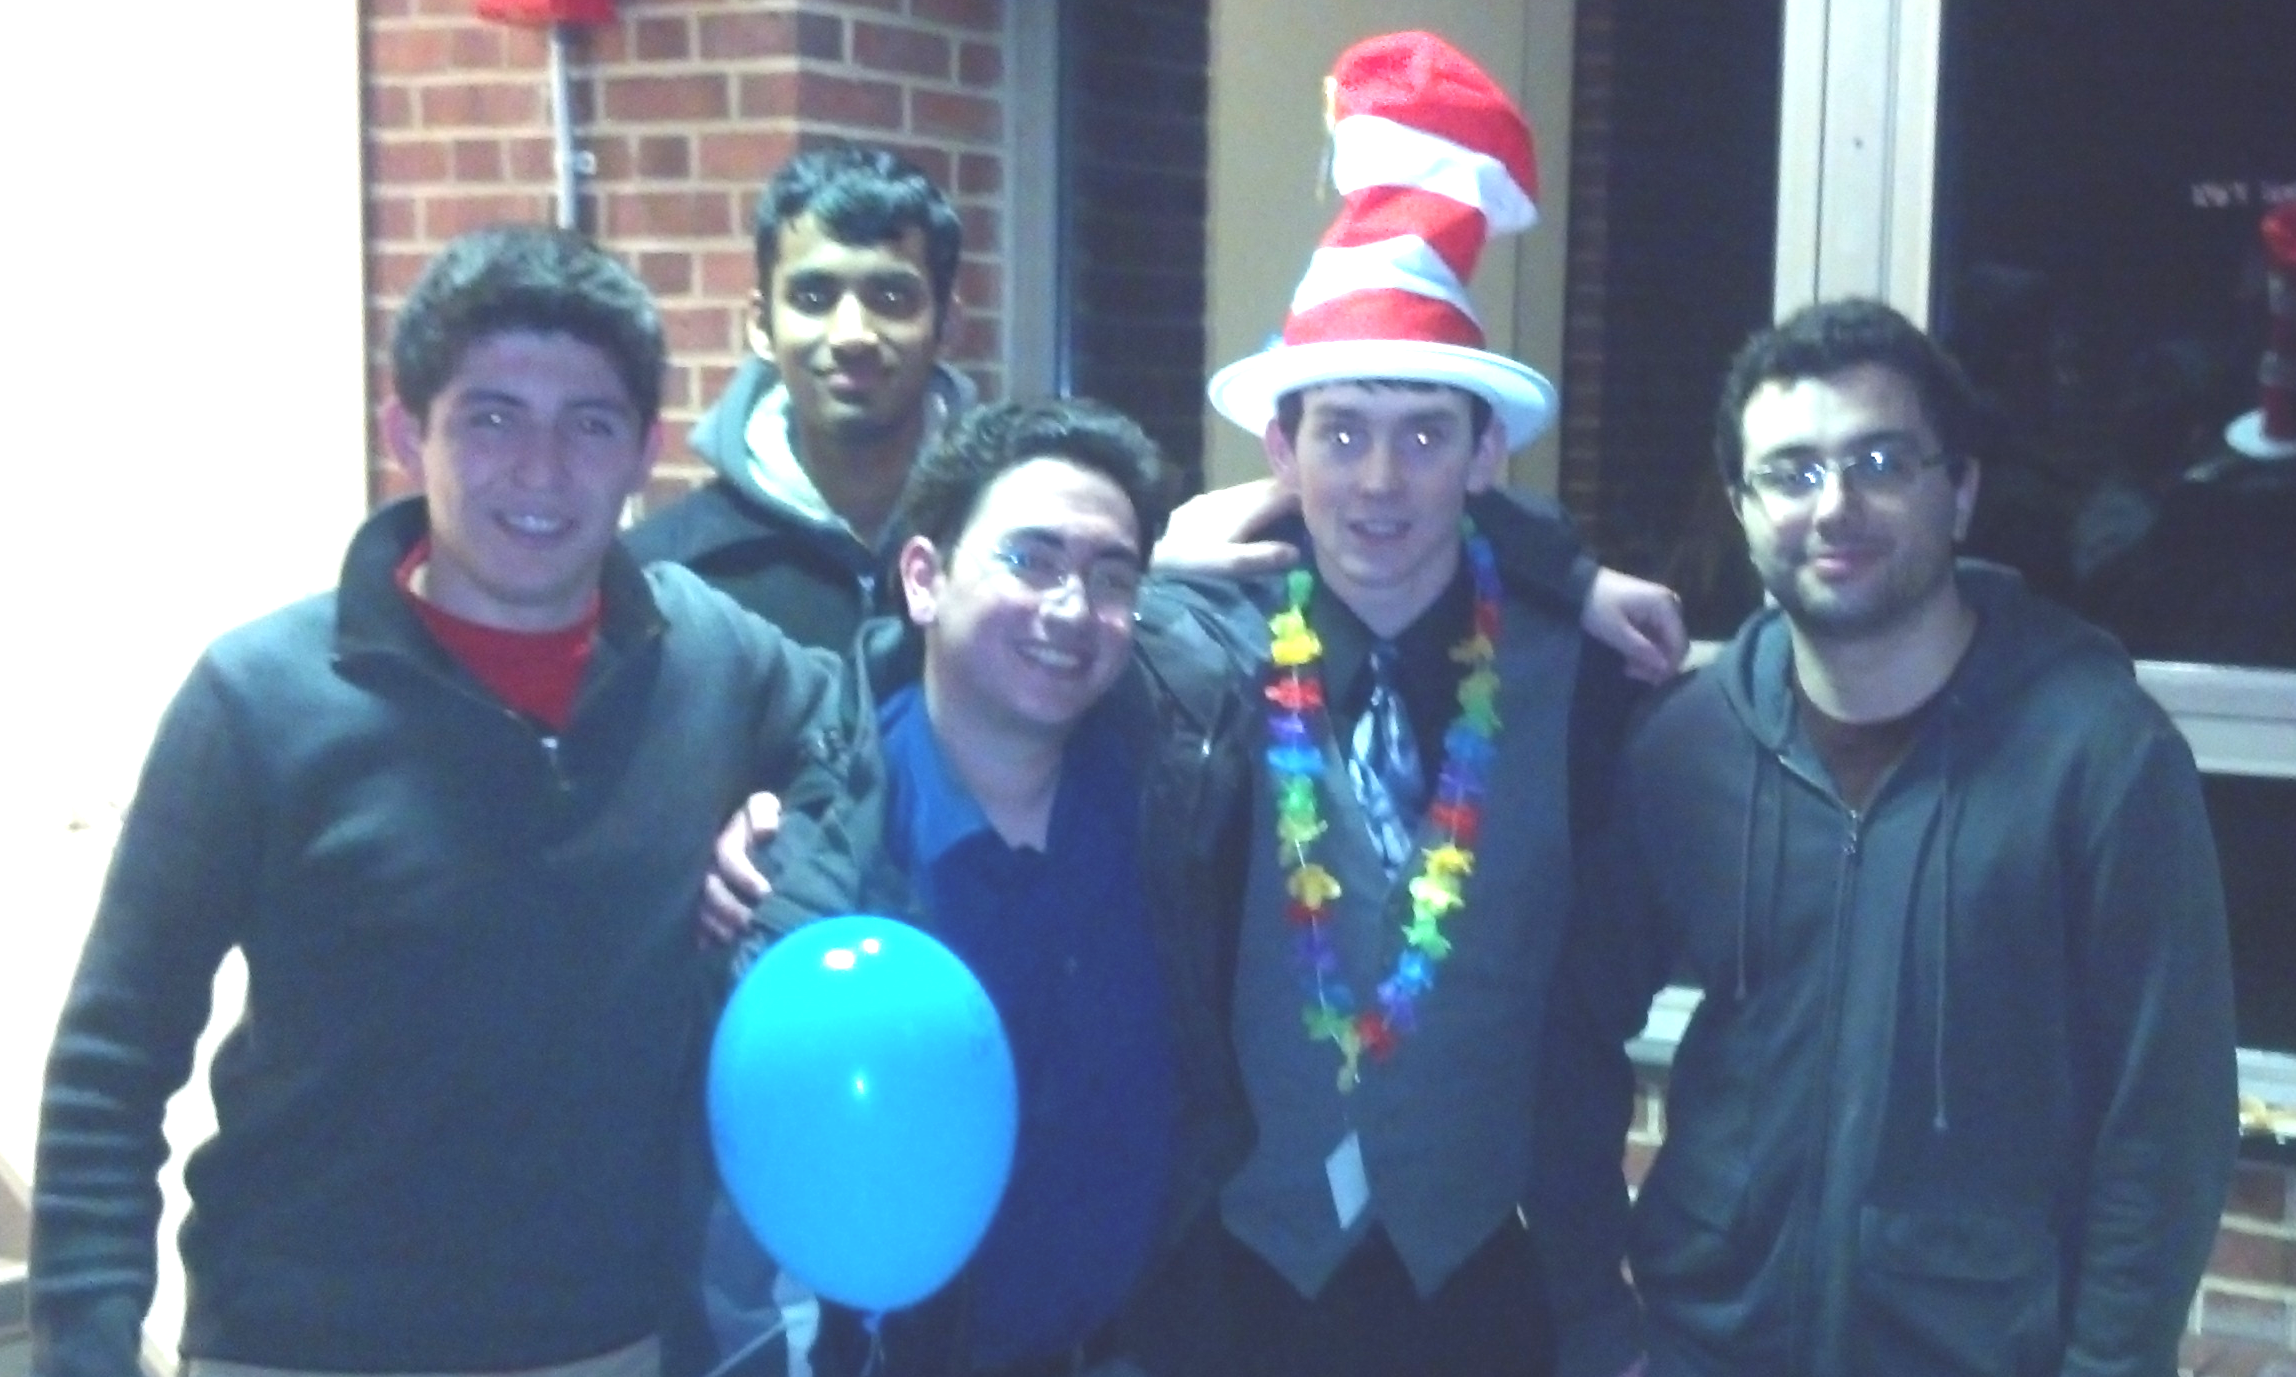 The small contingent of RUDU at F&M after taking 3rd place there.  The tournament theme was Dr. Seuss.  Left to right:  Brian Olivares, George Alukal, Chris Bergman, Sean Leonard, and Chris Baia.